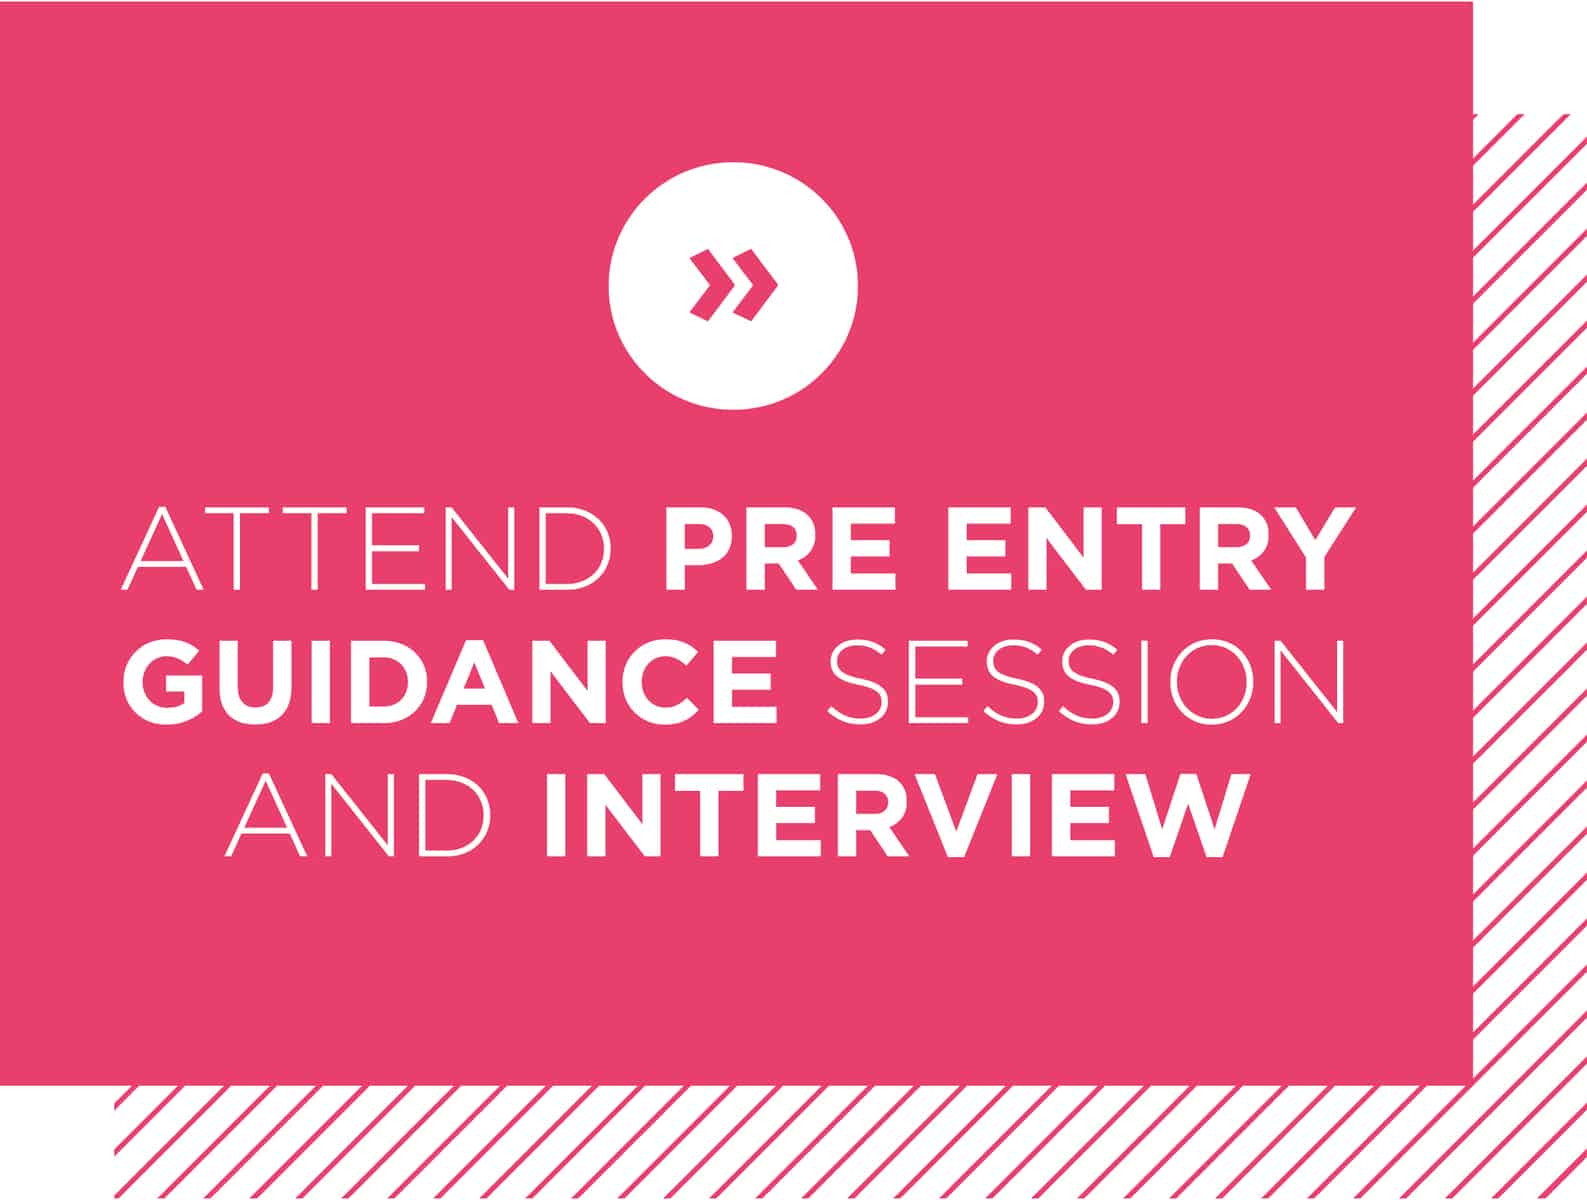 Attend Pre Entry guidance session and interview